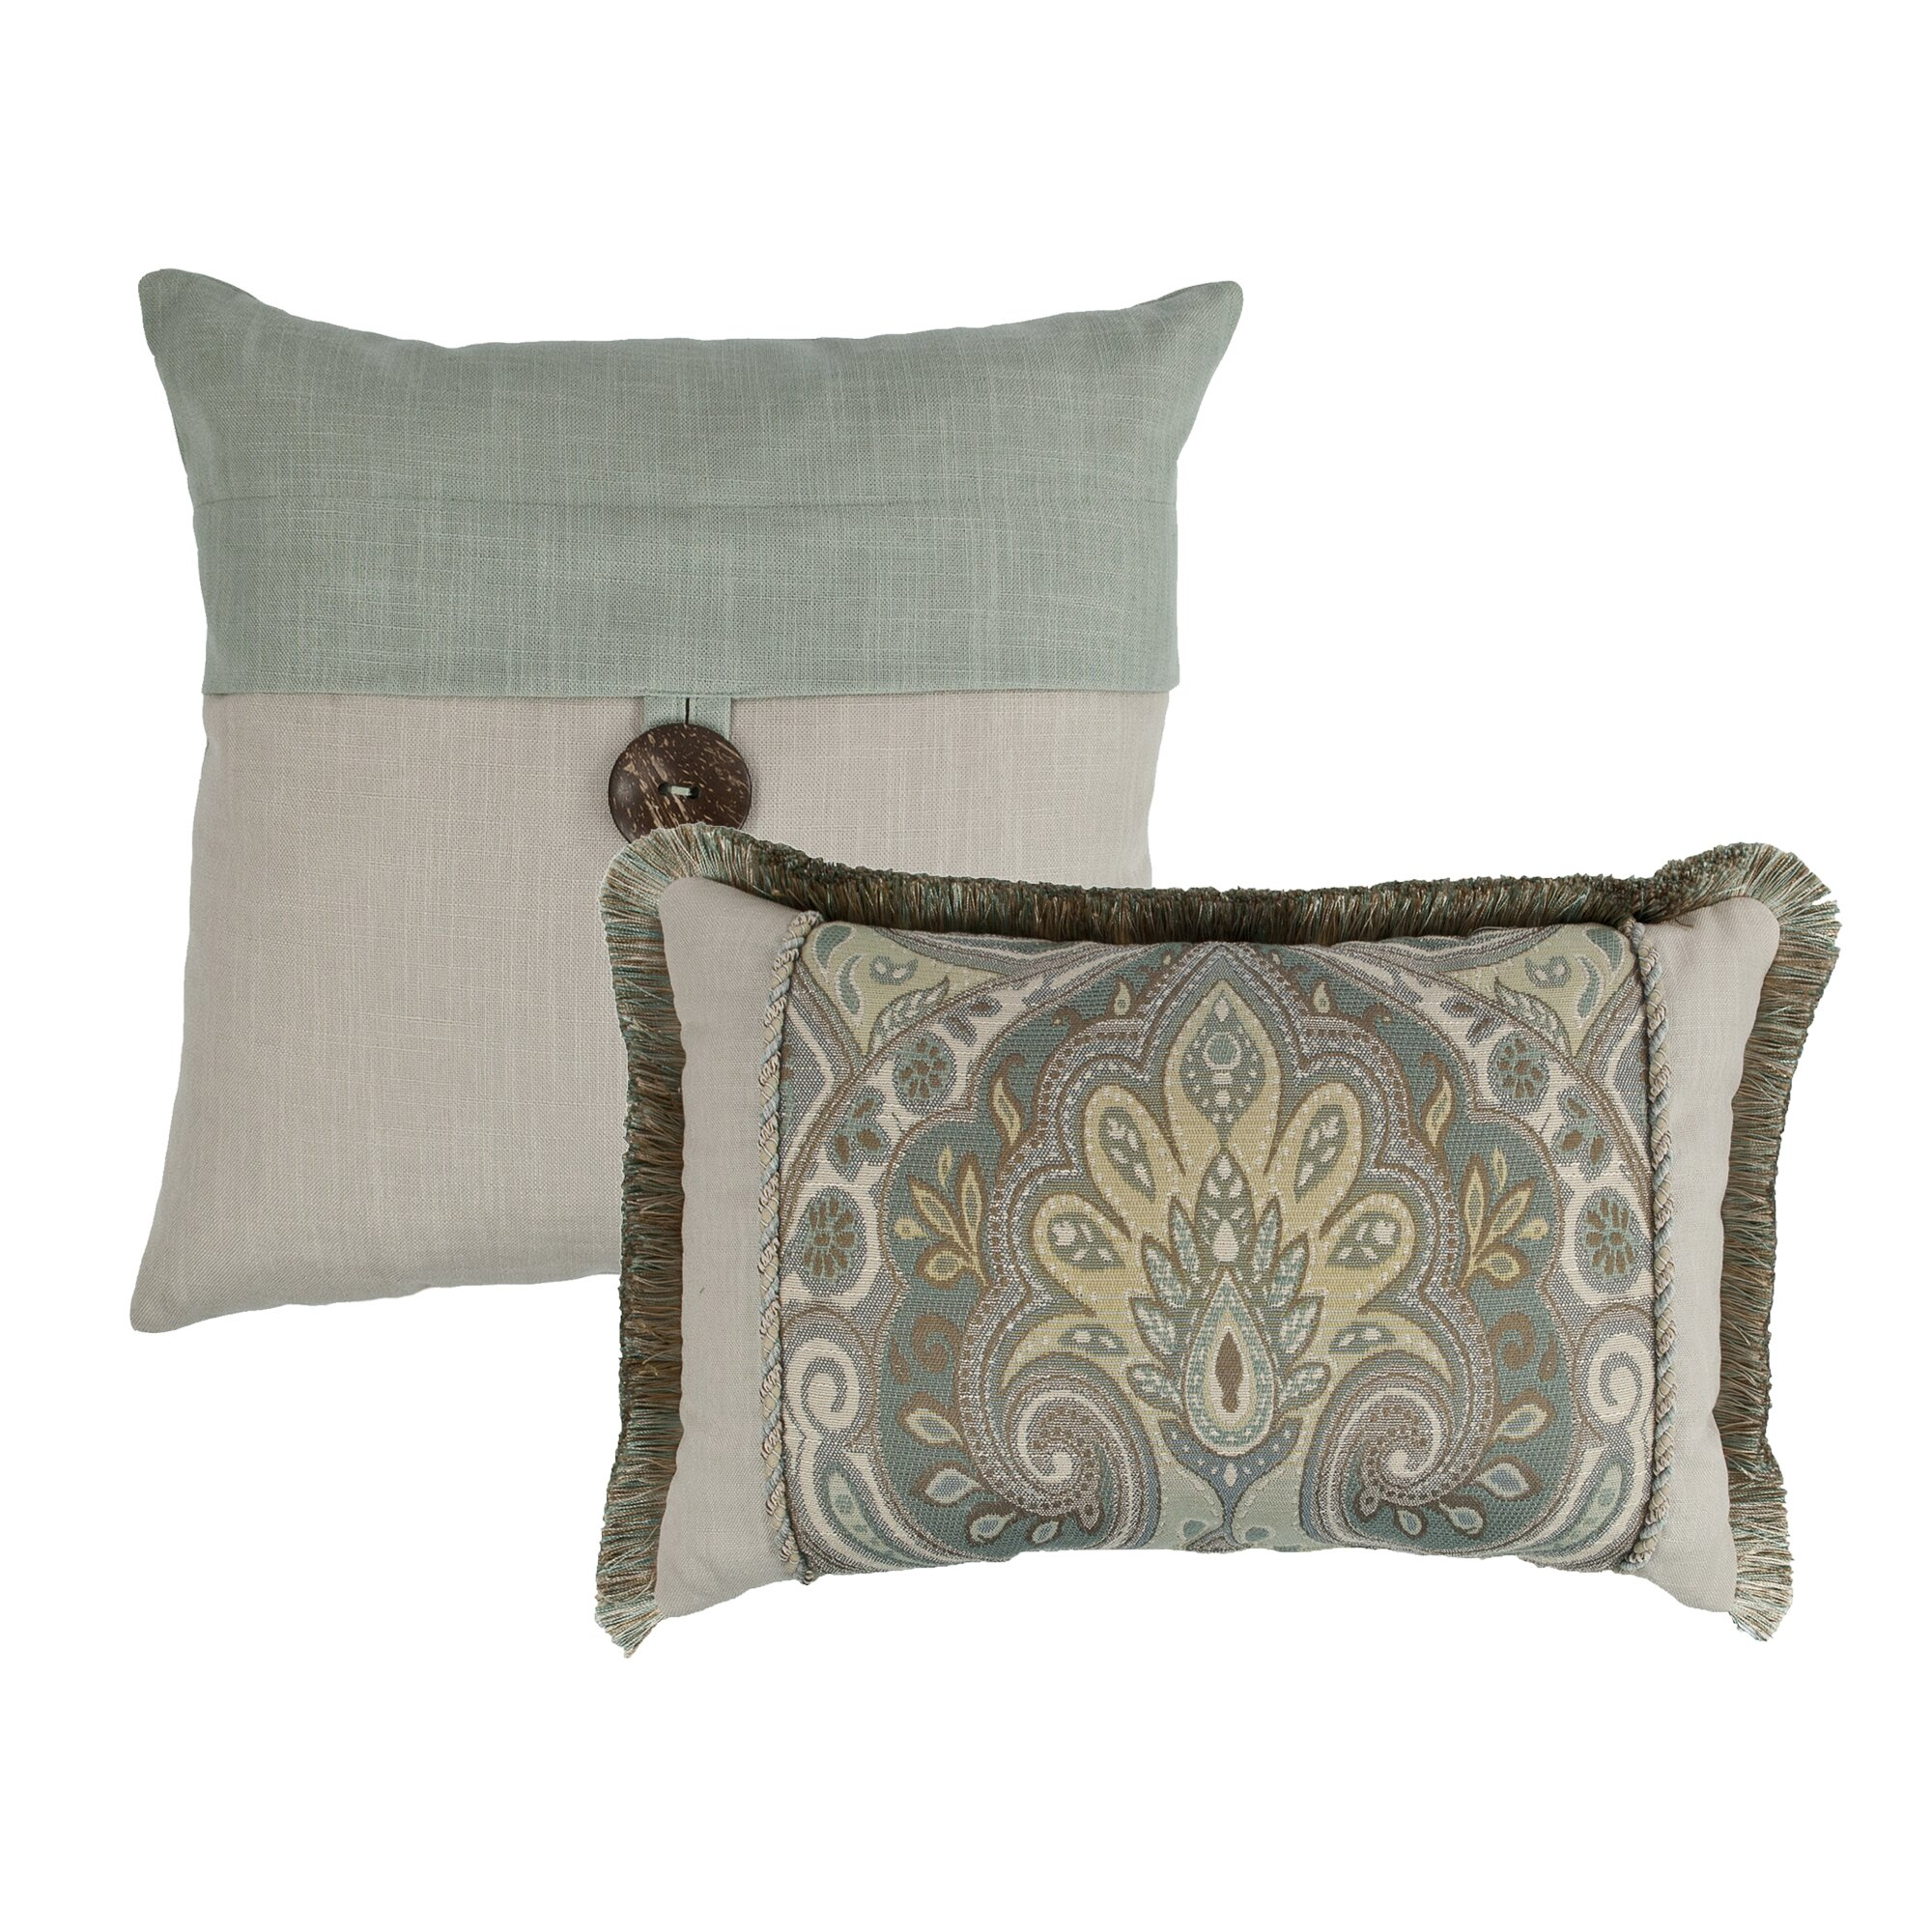 Decorative Pillow Set Sherry Kline Oasis 2 Piece Decorative Pillow Set Wayfair